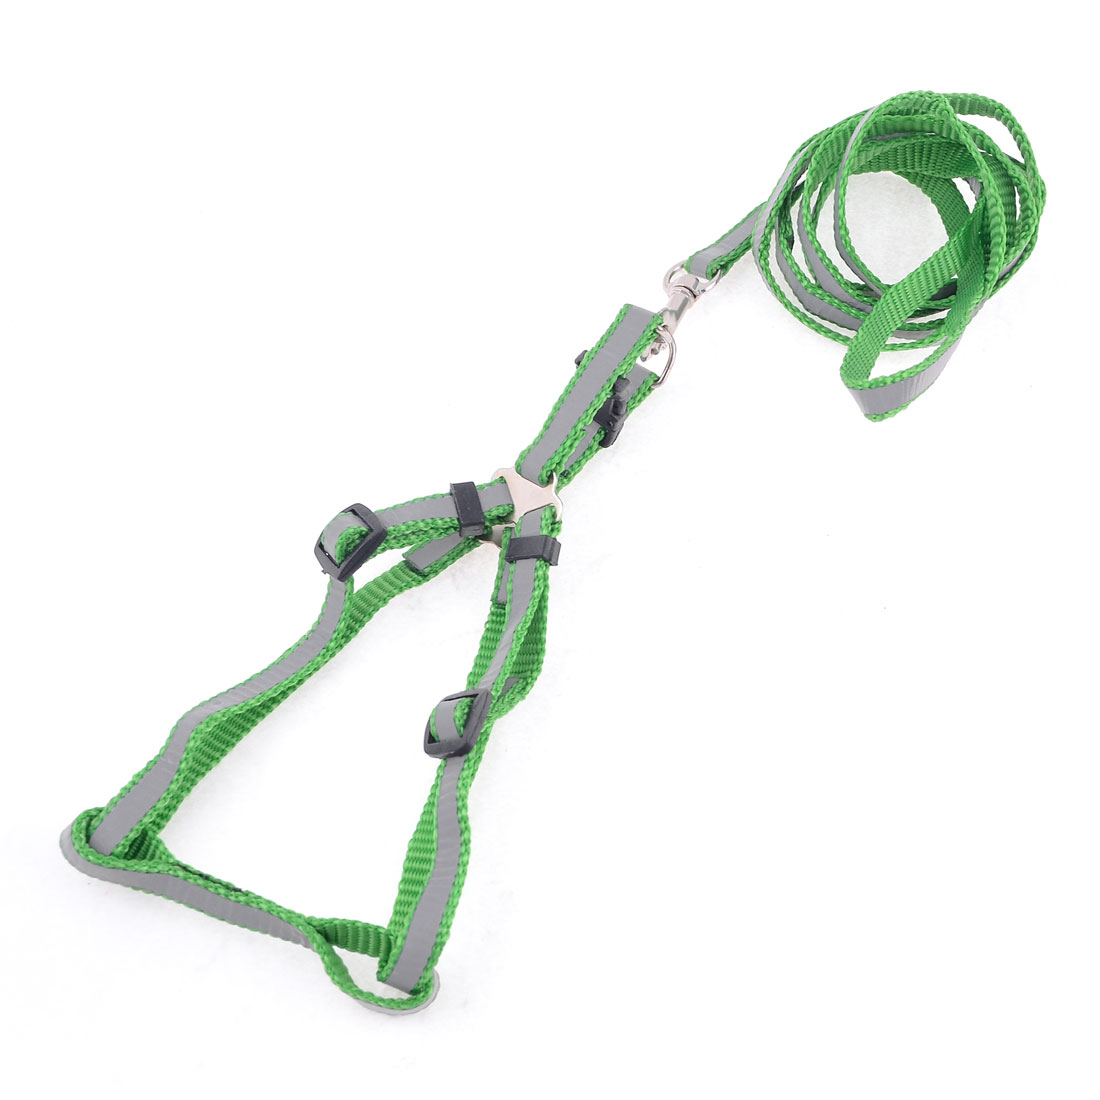 "Green Braided Doggie Rope Adjustable Dog Harness Halter Leash Set 46.1"" Long"